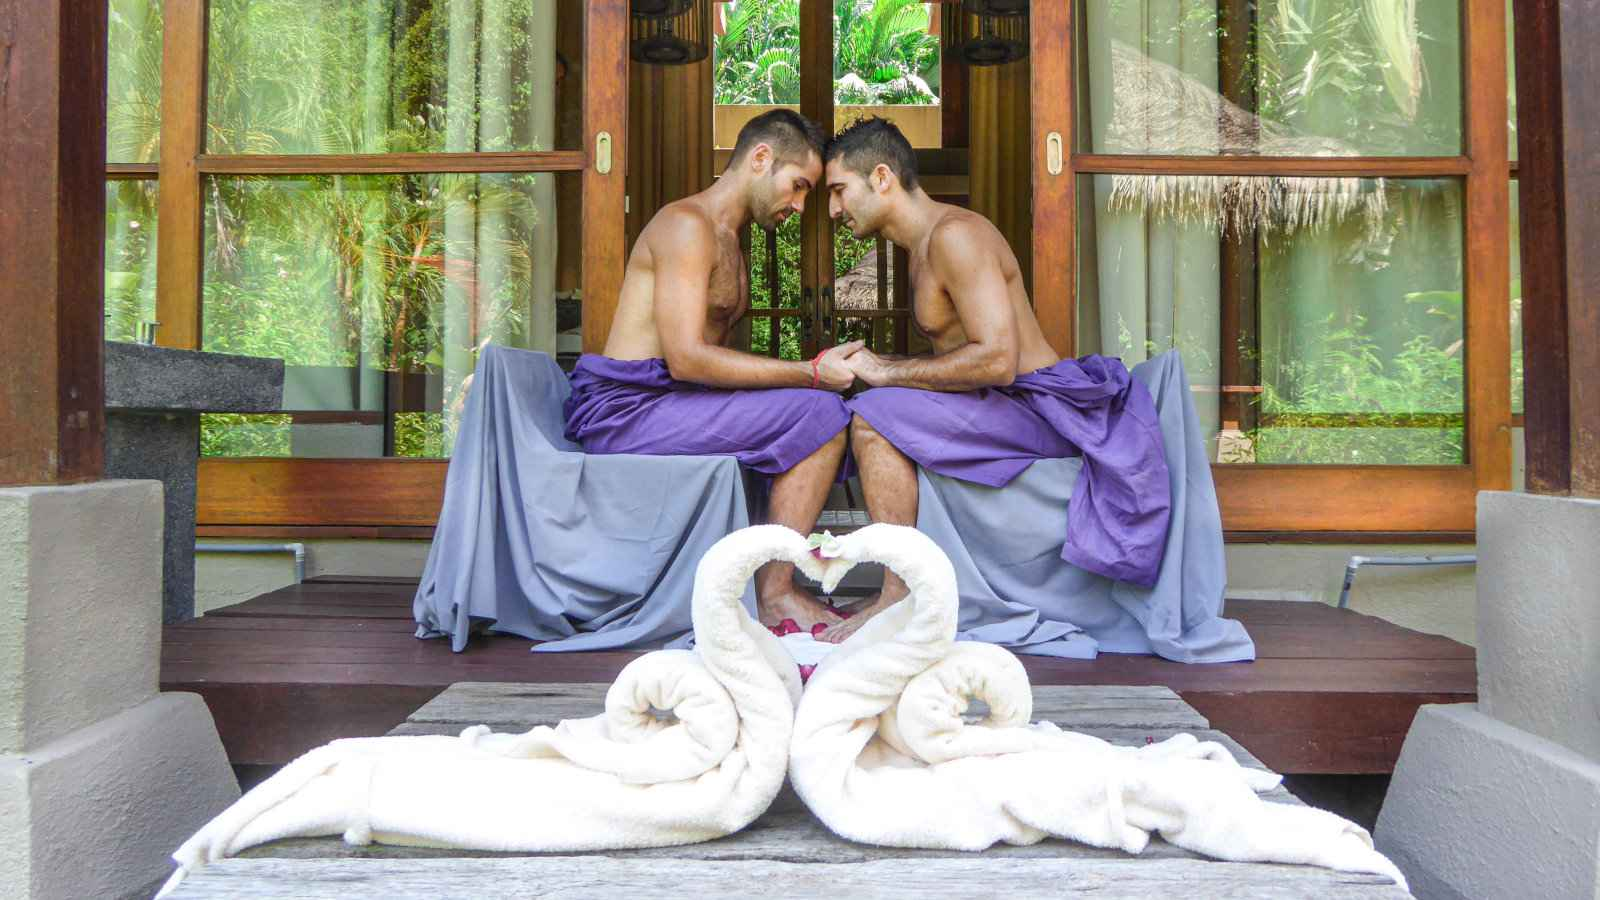 The Four Seasons in Langkawi is one of the most gay friendly hotels on the island, plus it's incredibly opulent and relaxing